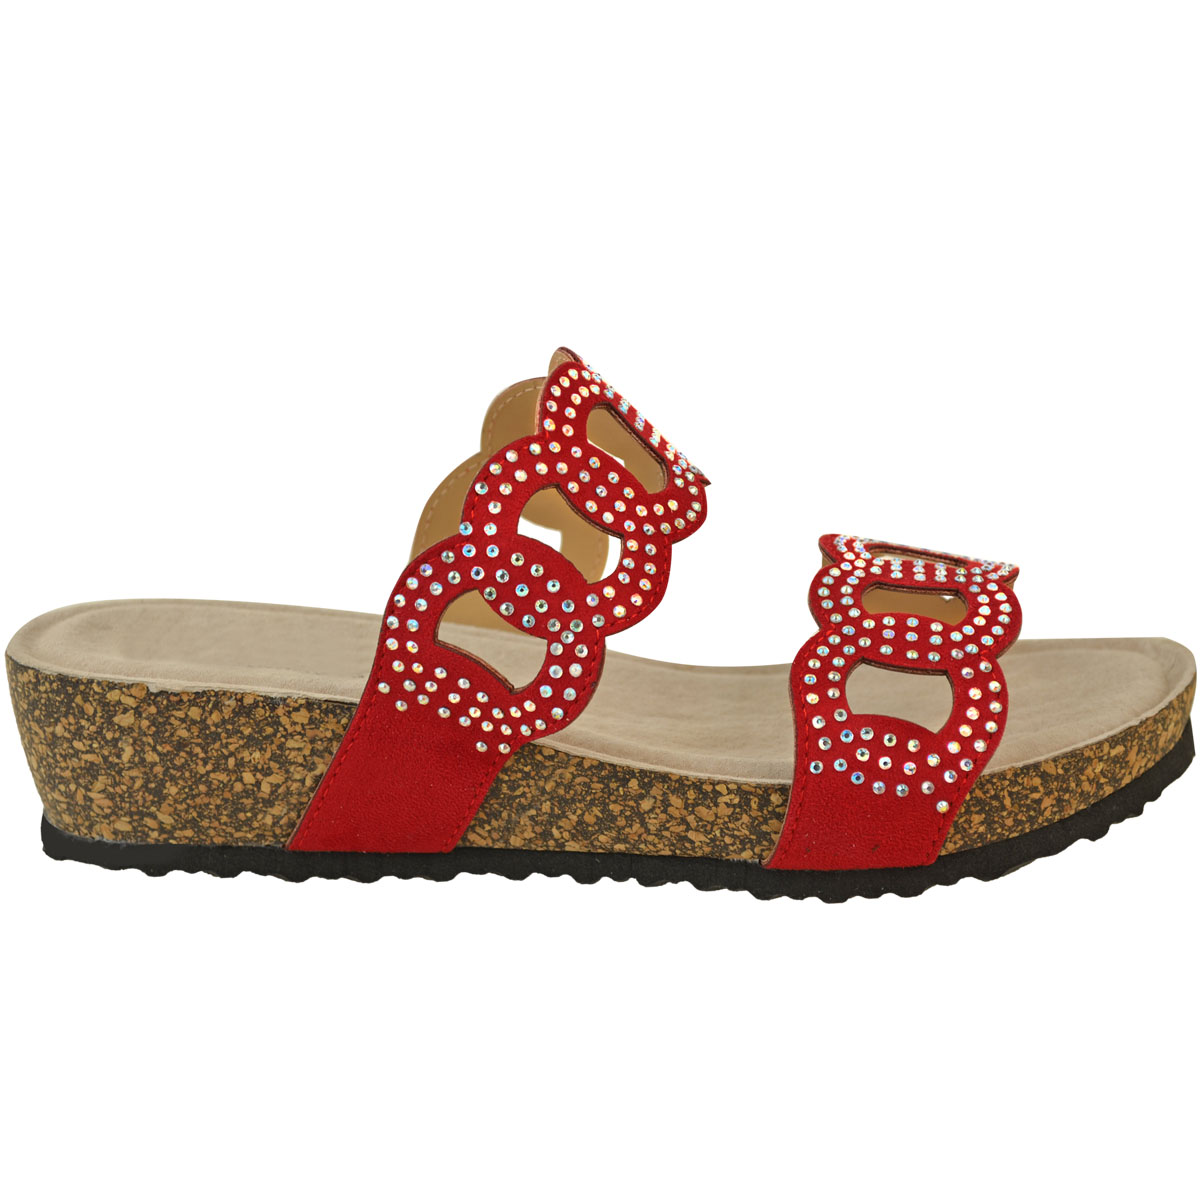 Womens-Ladies-Low-Wedge-Comfort-Cushioned-Sandals-Diamante-Wedding-Party-Shoes